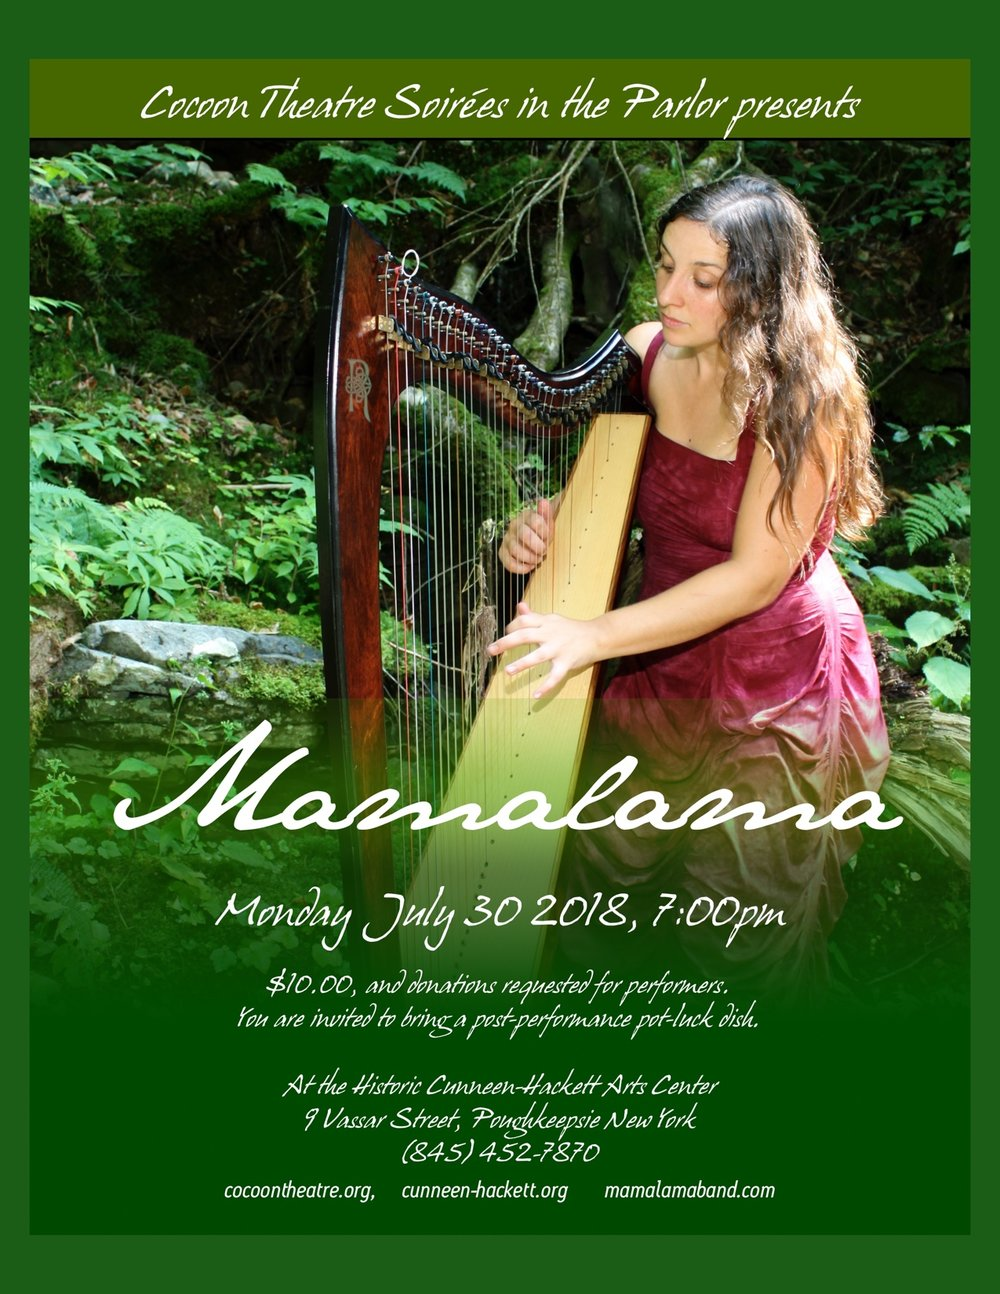 "A listening experience that has been described as ""like walking into a dream,"" Mamalama seamlessly weaves together world music (Native American, Middle Eastern, Celtic), classical minimalism, early/sacred/renaissance, psychedelia, indie-chamber music, and vivid lyrical mysticism. Mamalama is an uncommon orchestration of harp and ethereal voice, hammered dulcimer, glockenspiel, melodica, tenor recorder, piano, tenor mandolin, quena, charango, panpipes, and choral voices.  Mamalama has produced three CDs, and read and hear more about the band and their music at  http://www.mamalamaband.com .  Our upcoming shows will all be concentrating on playing some new material that blends Andes Manta's music and players with Mamalama's. Here is a link to a 28 minute section of this music from a concert in the Old Dutch Church in 2017:  https://soundcloud.com/mamalama-572648143/flutes-passion-of-cloud-causai-pacha-standing-on-serpents"